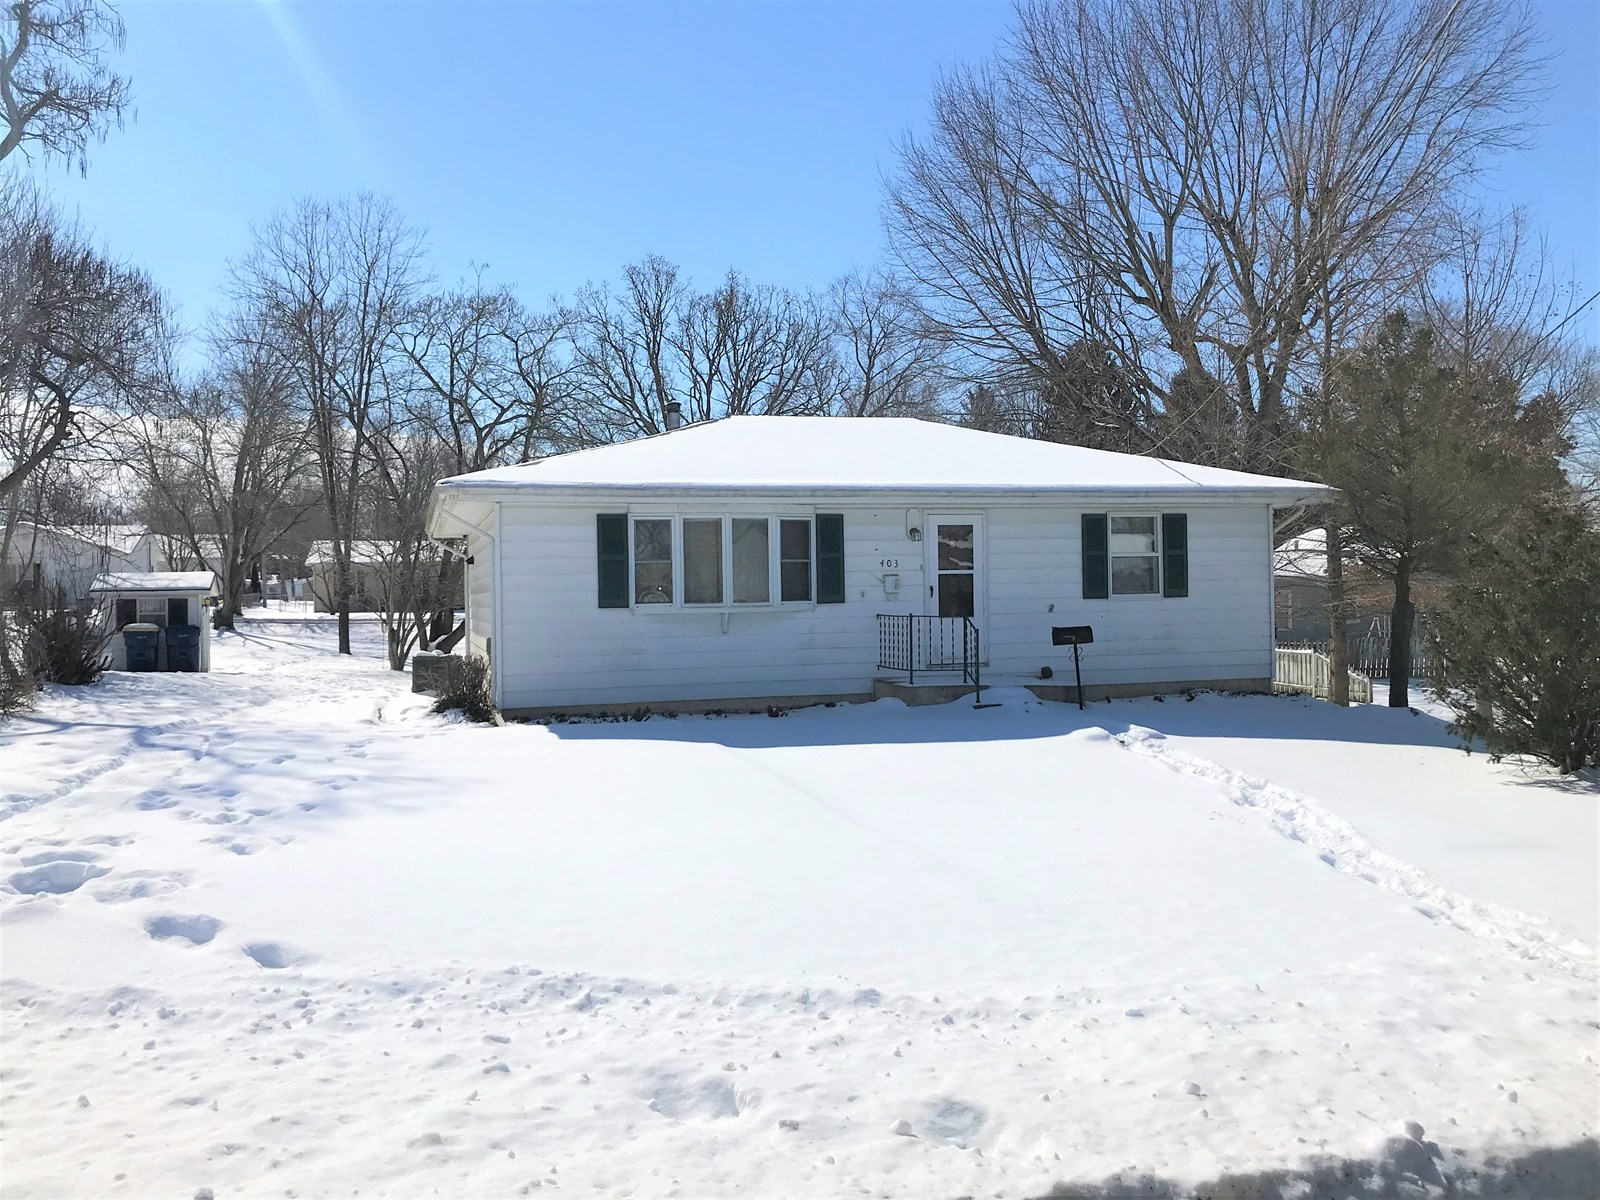 2 Bedroom home in town w/walkout basement and detached shop